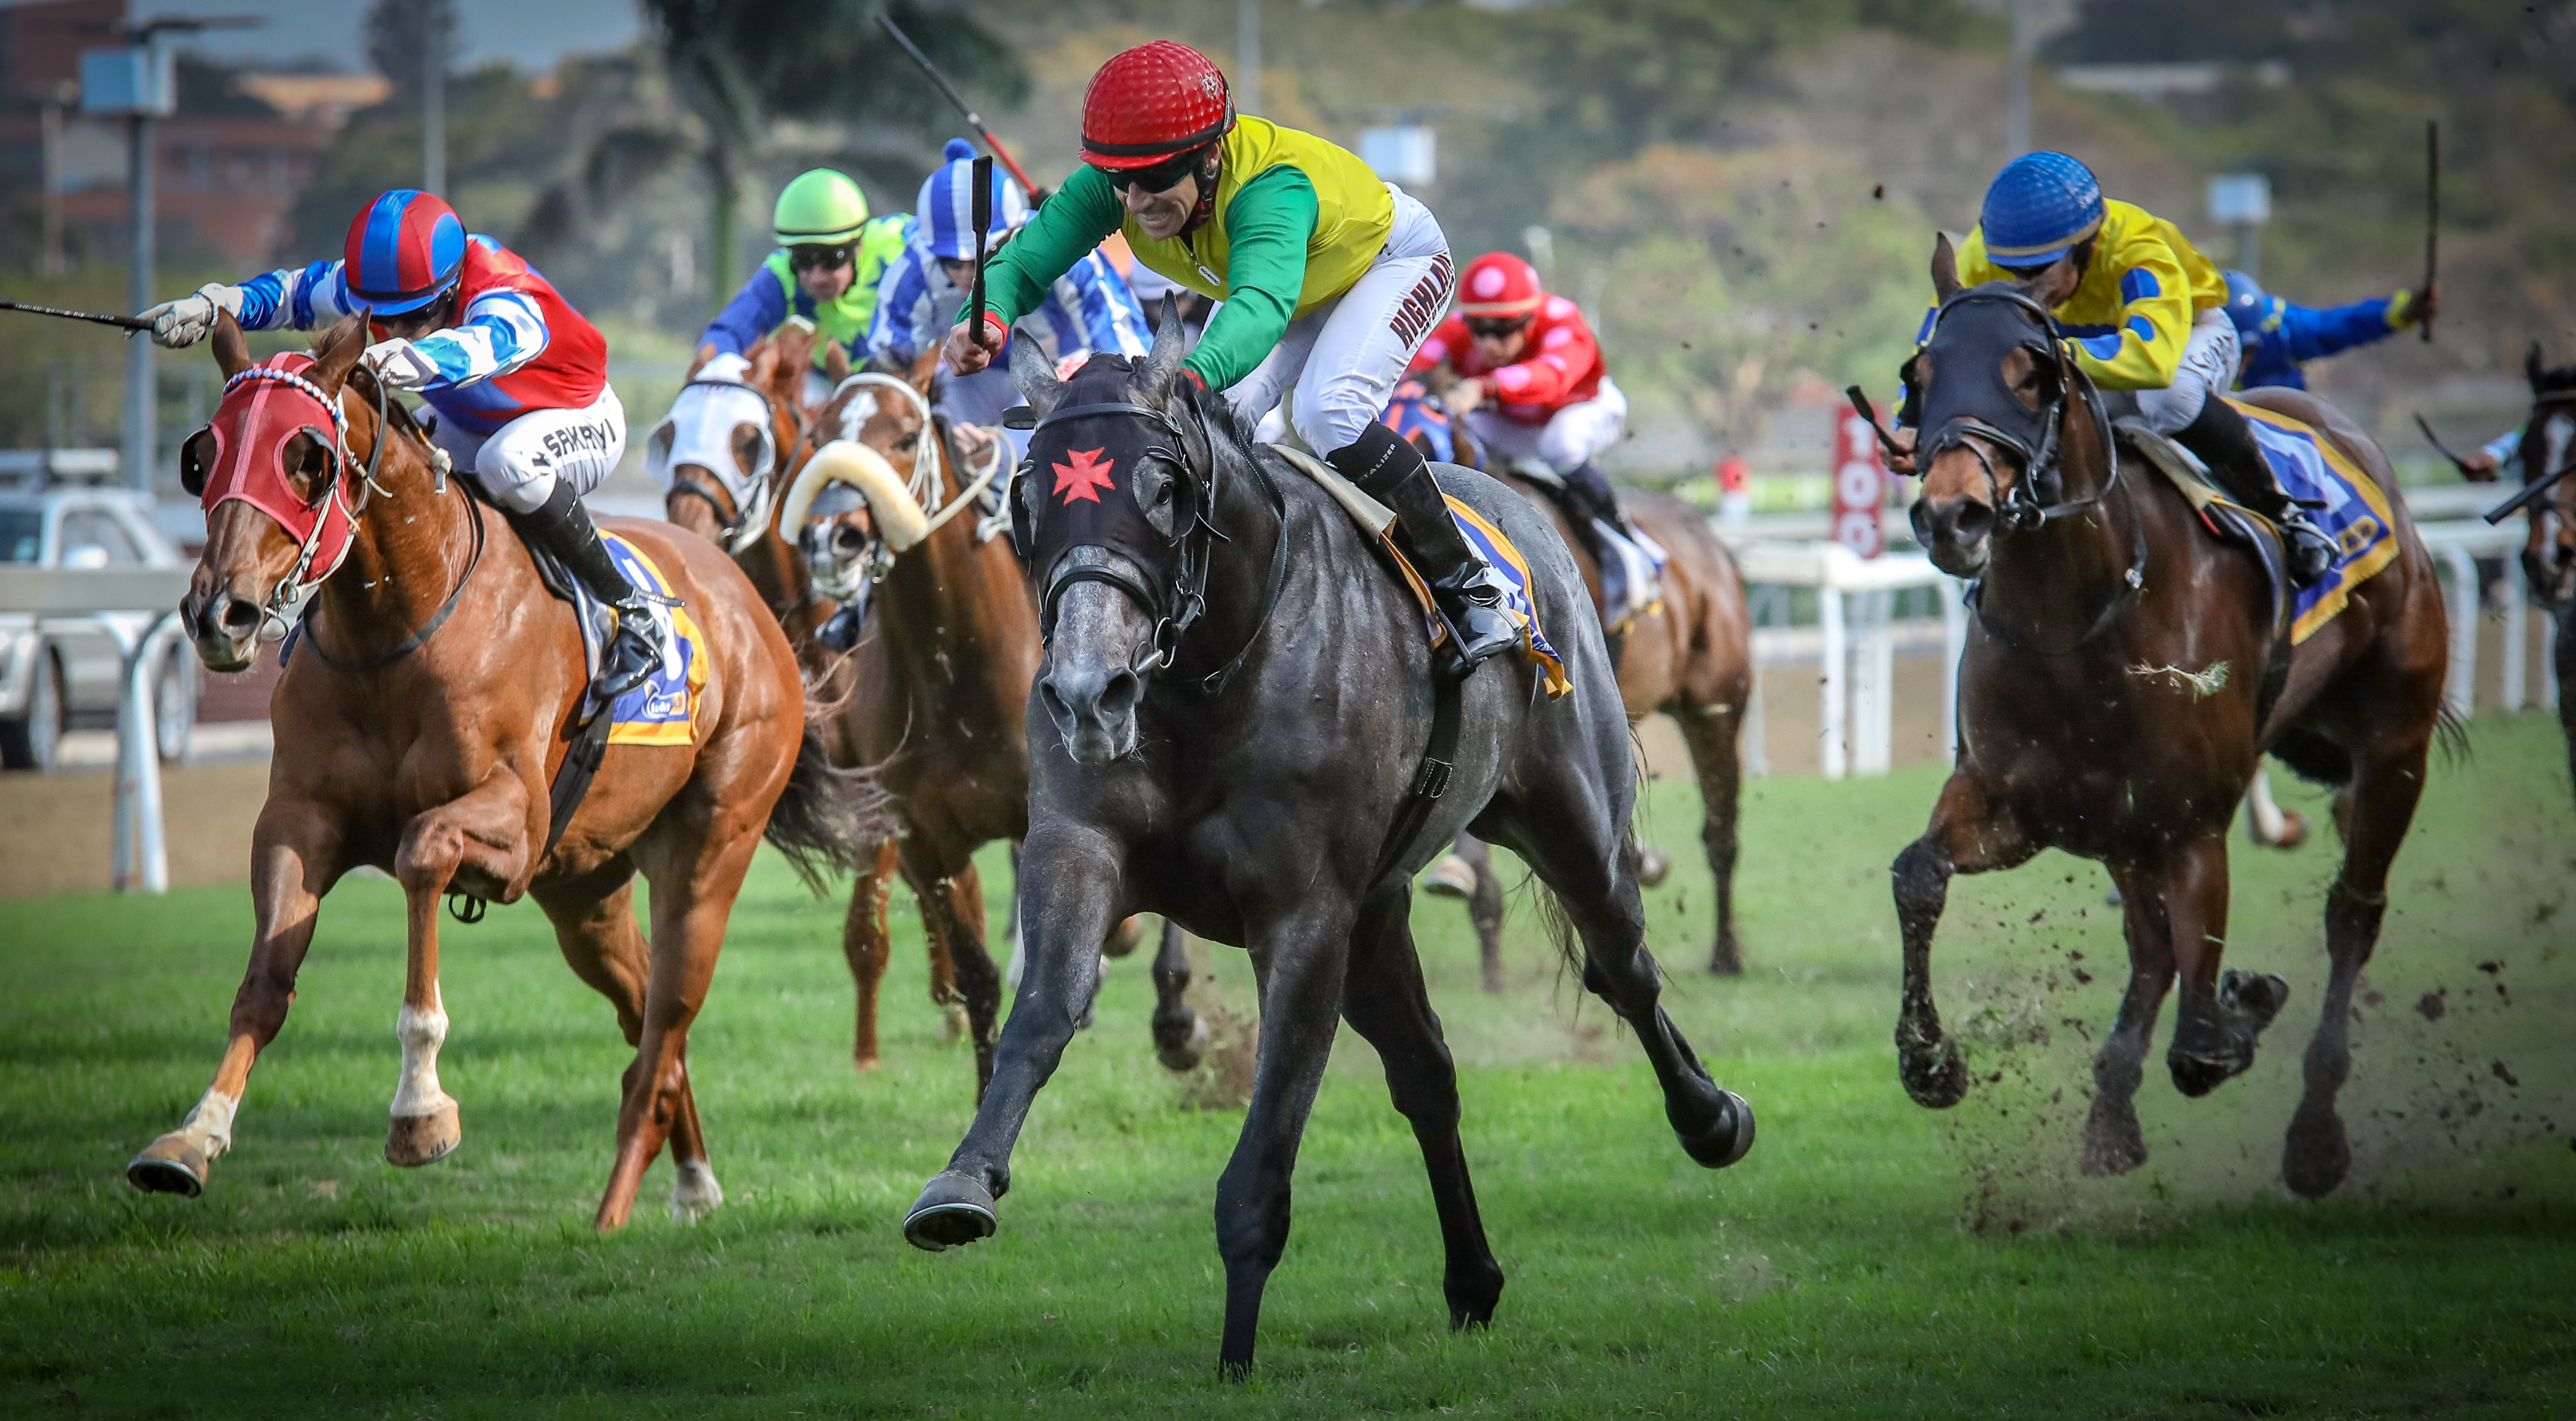 White Lightning flies home to victory on the Greyville turf, and is a very exciting prospect in training with Paul Lafferty. Image: Candiese Marnewick